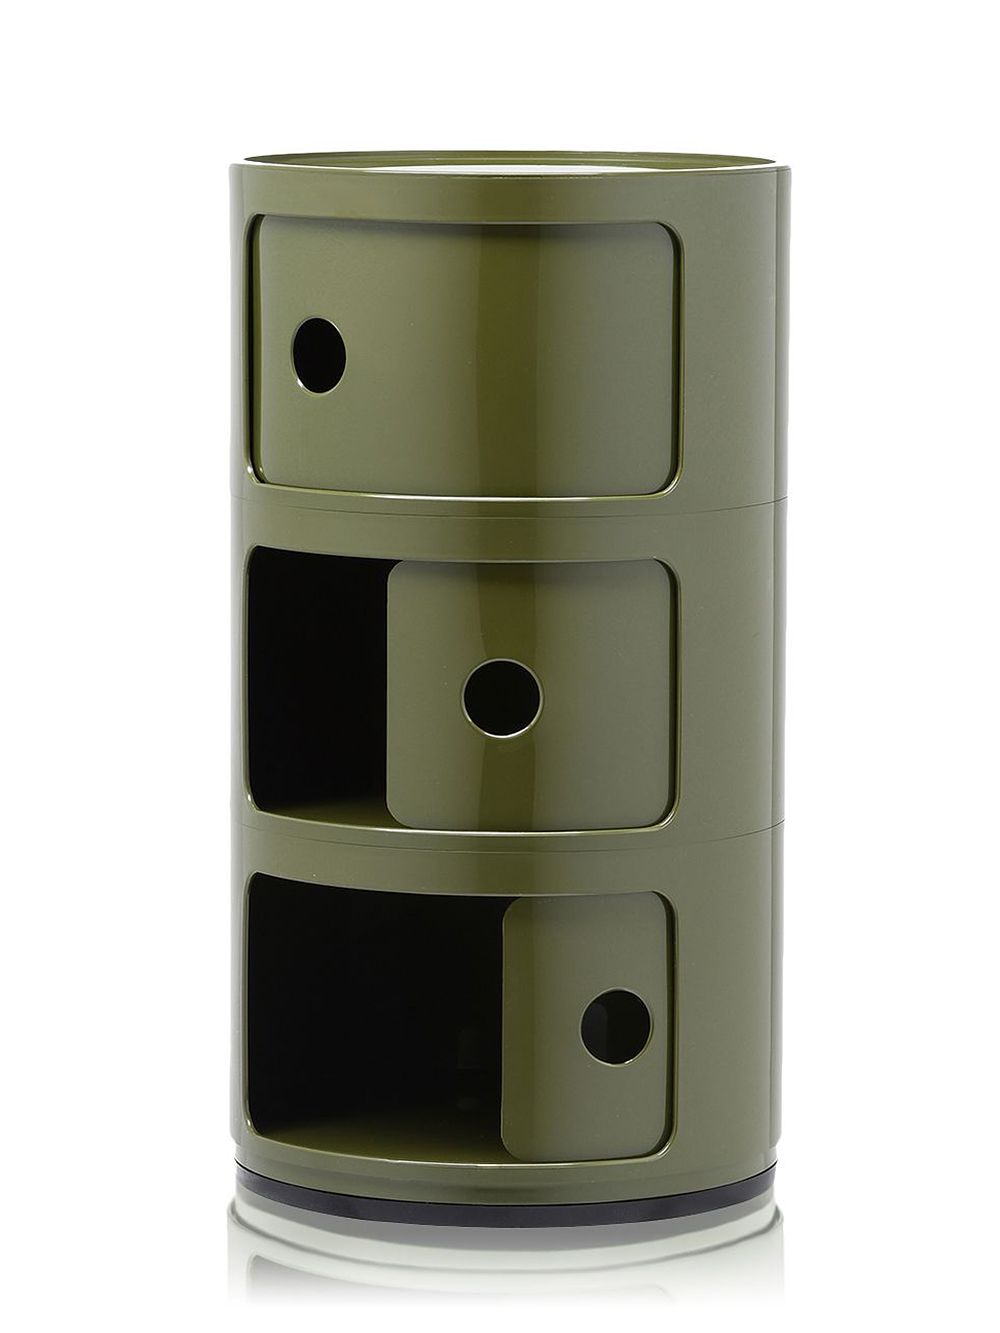 Kartell Componibili storage unit in green